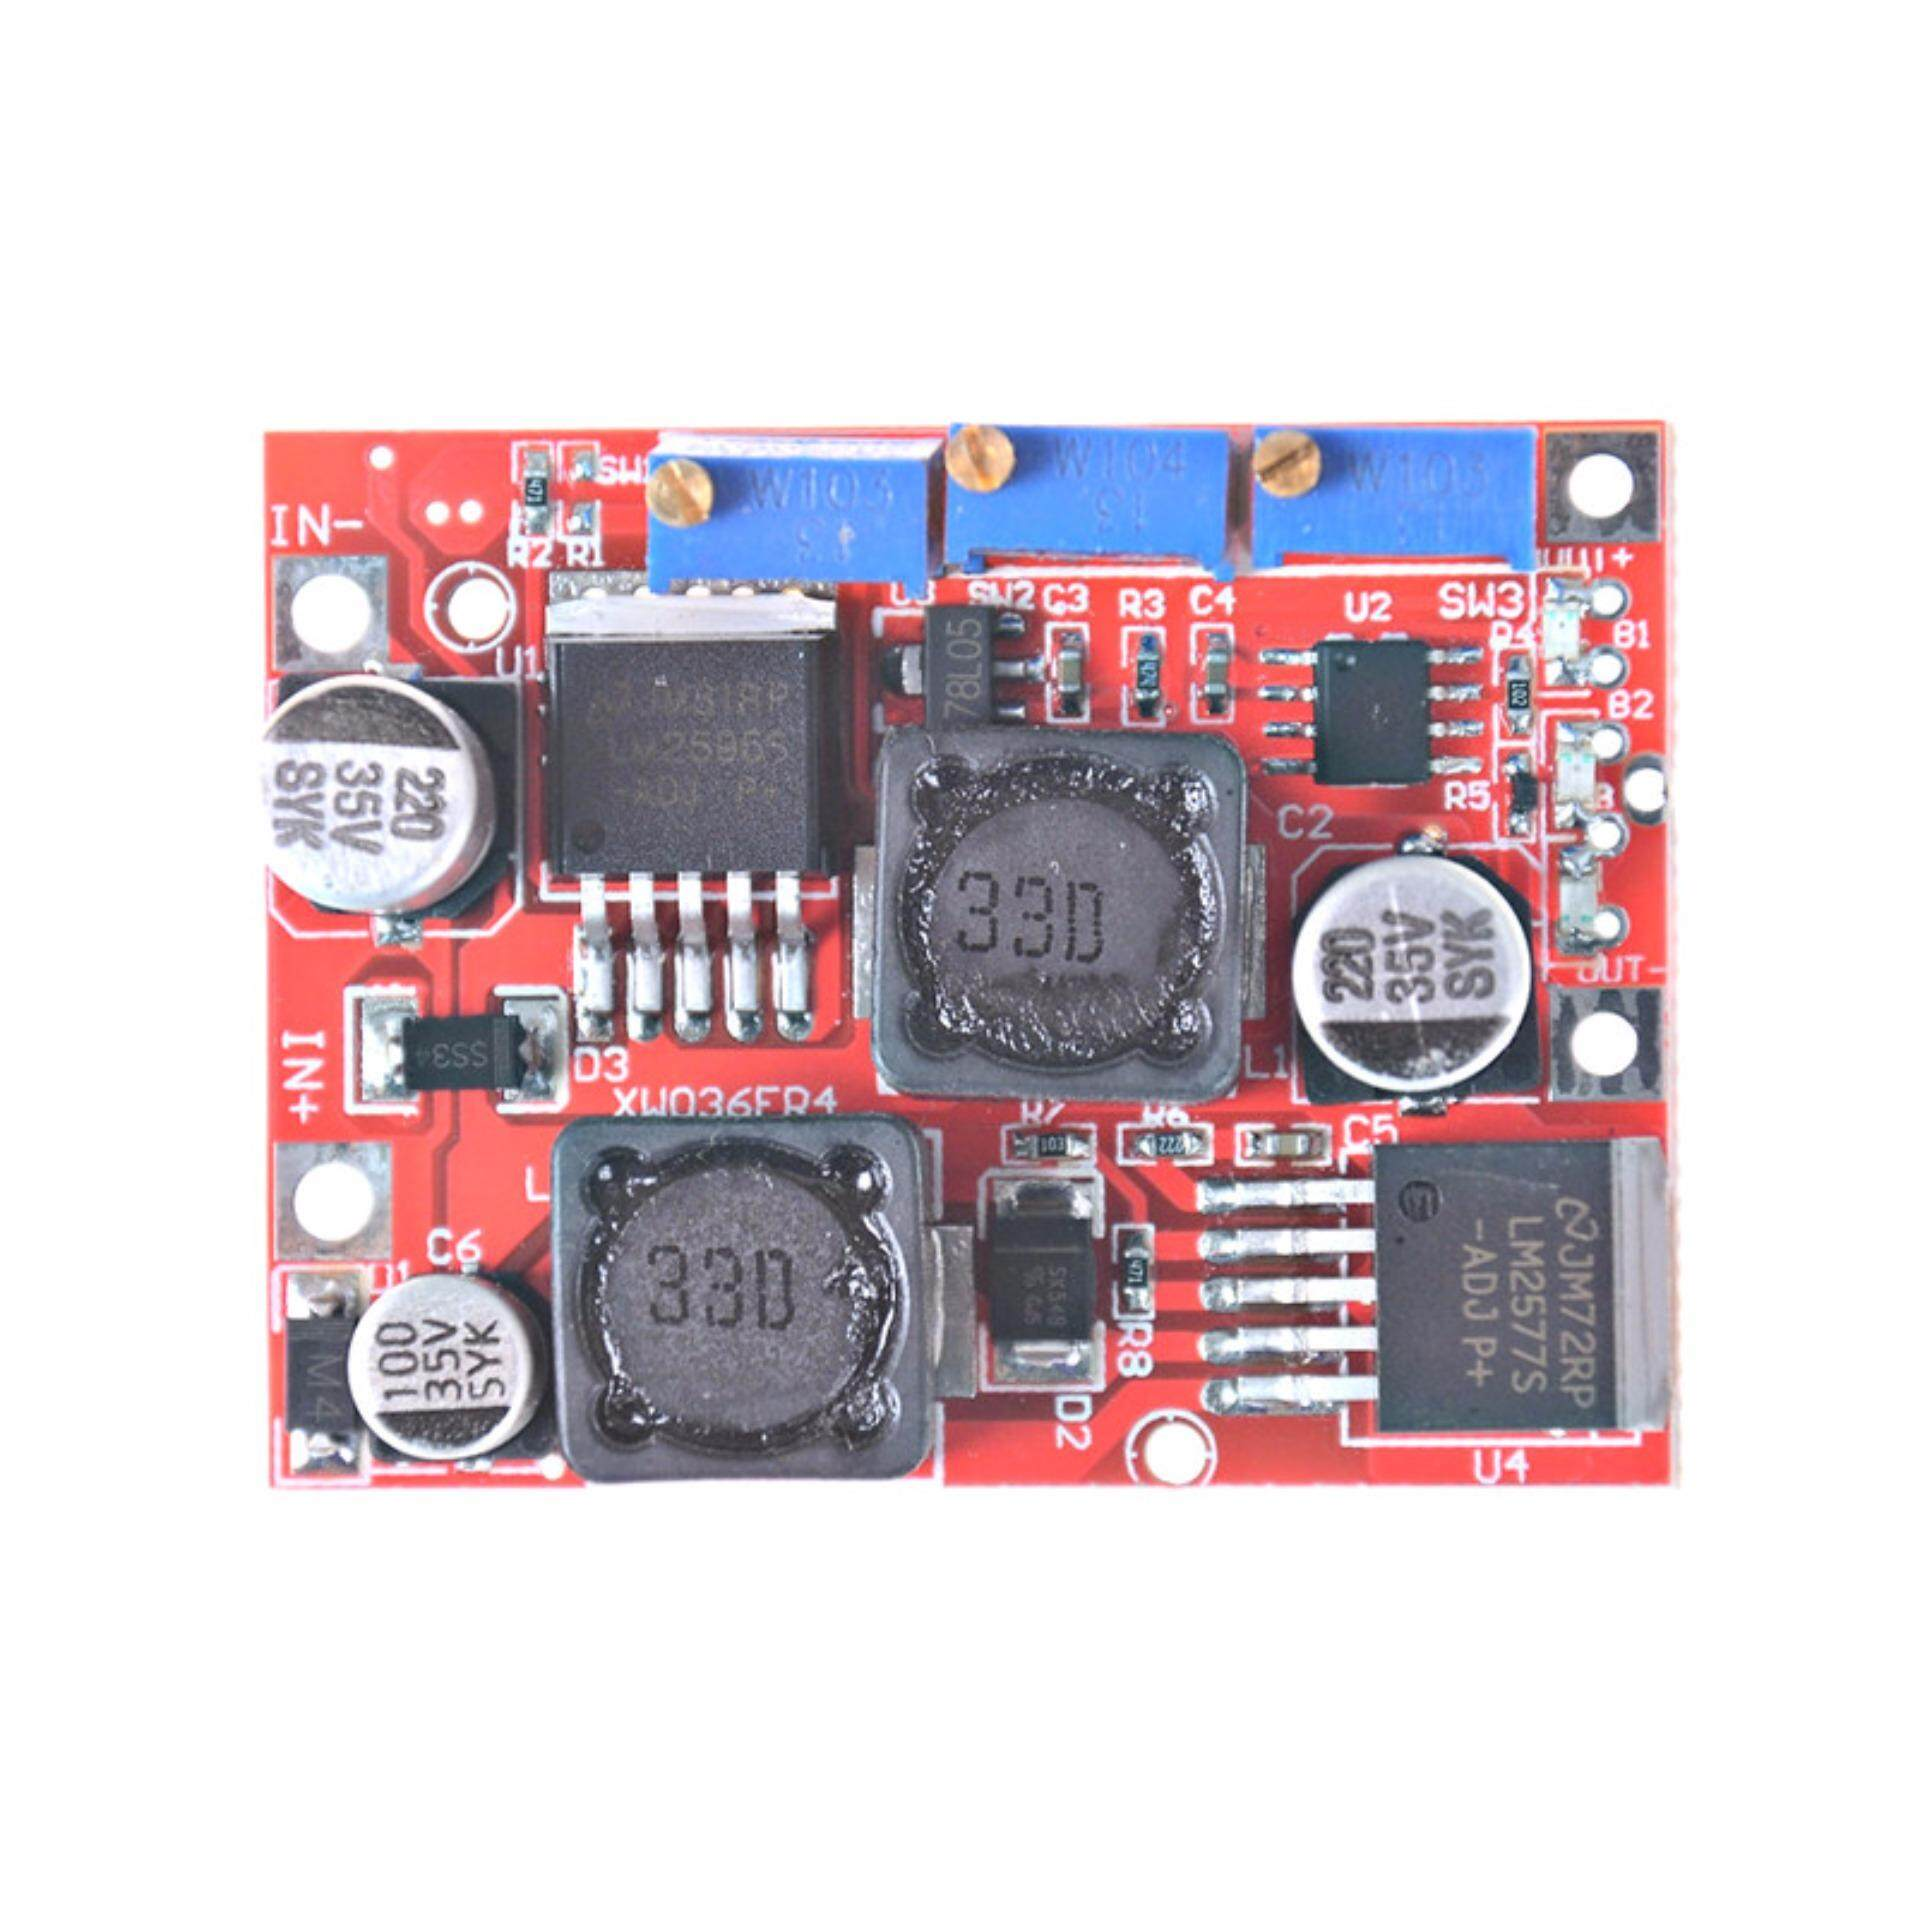 Features Dc Buck Step Down Voltage Converter Regulator 24v To 12v Up Circuit Boost Module